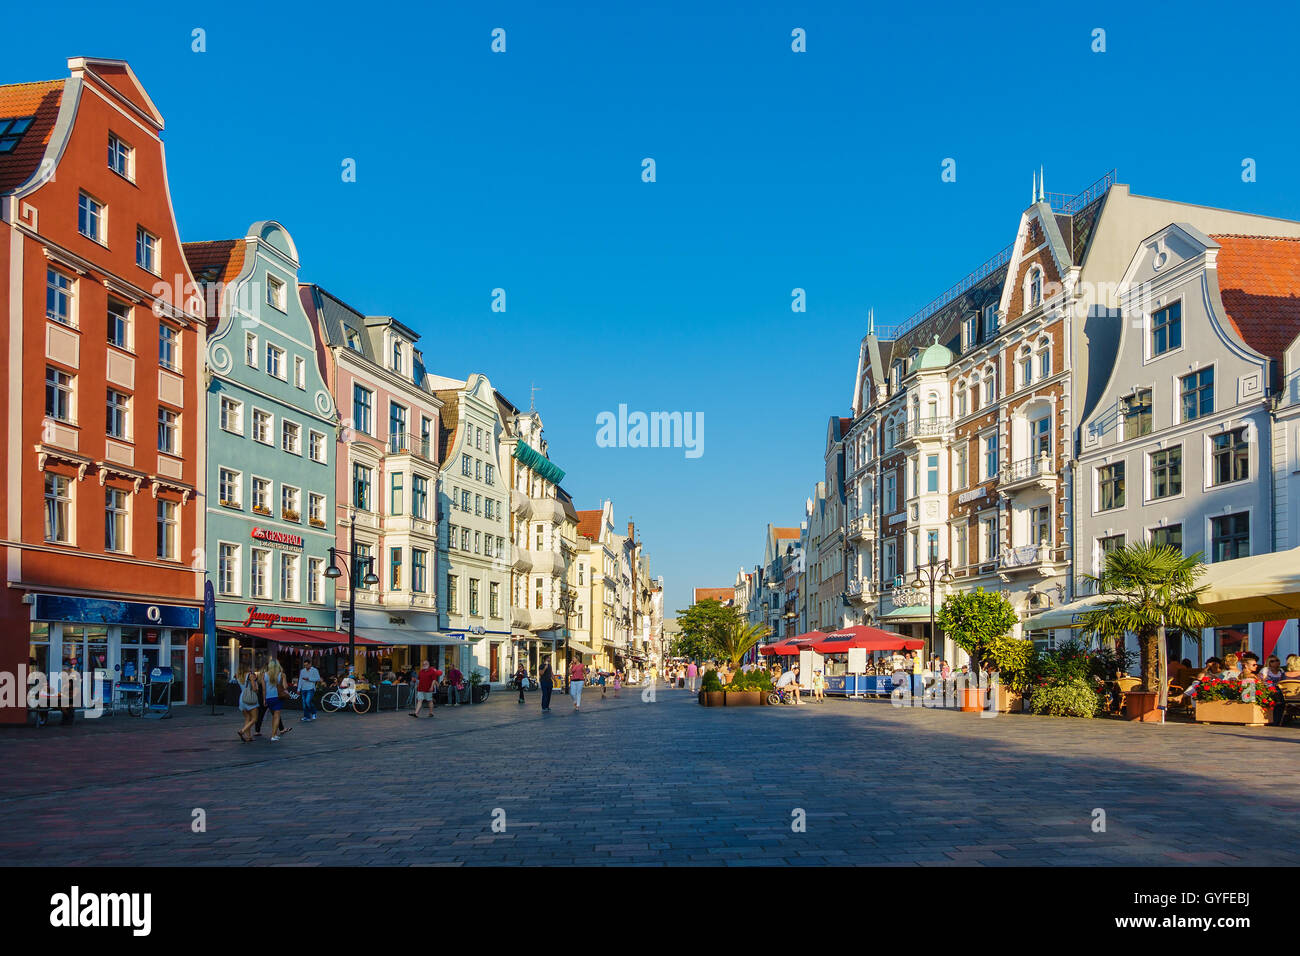 Rostock Shopping View To A Shopping Street In Rostock Germany Stock Photo